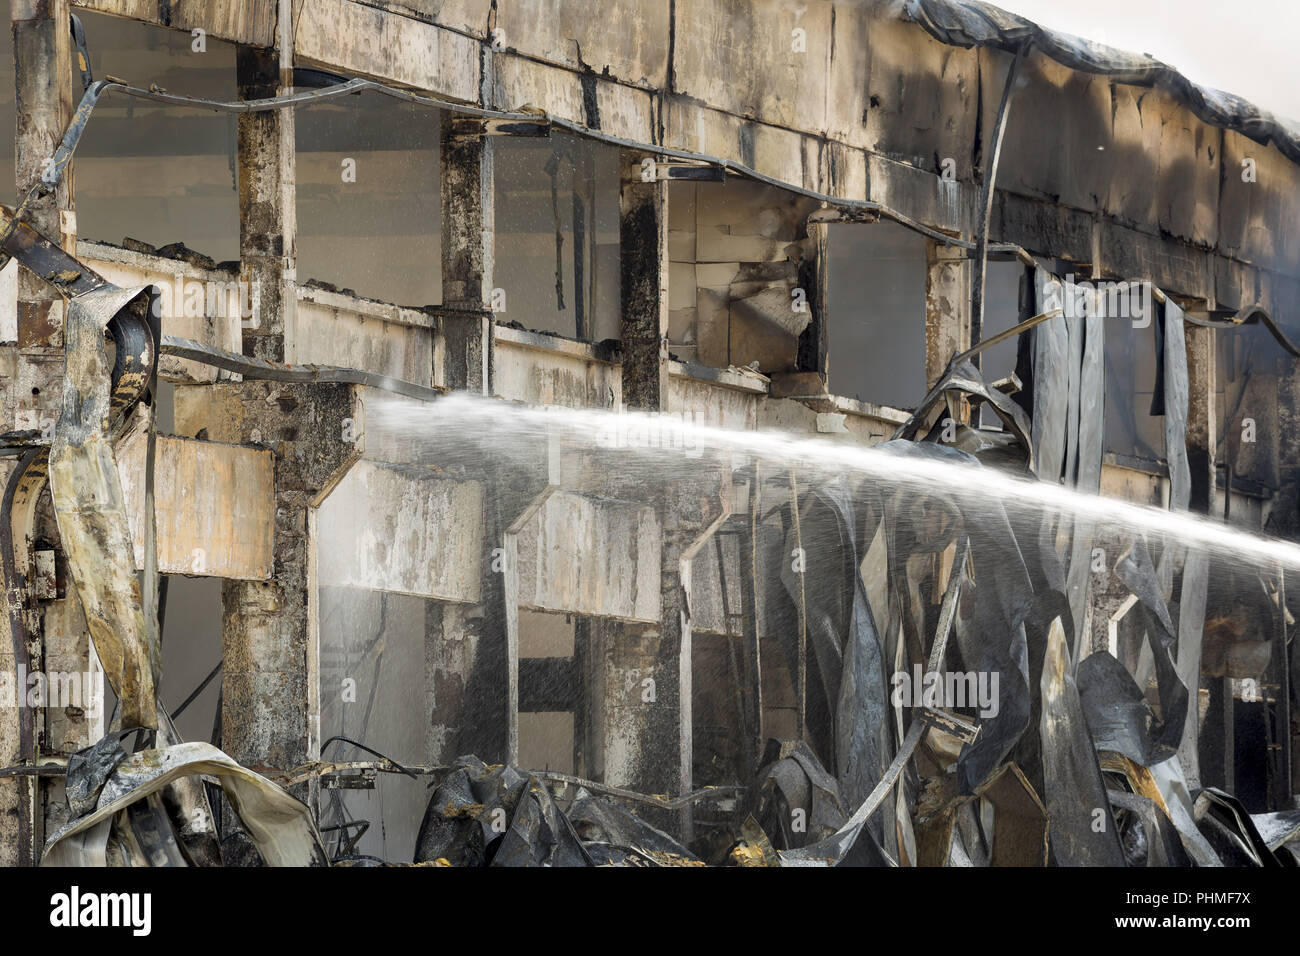 Large fire disaster in a warehouse - Stock Image